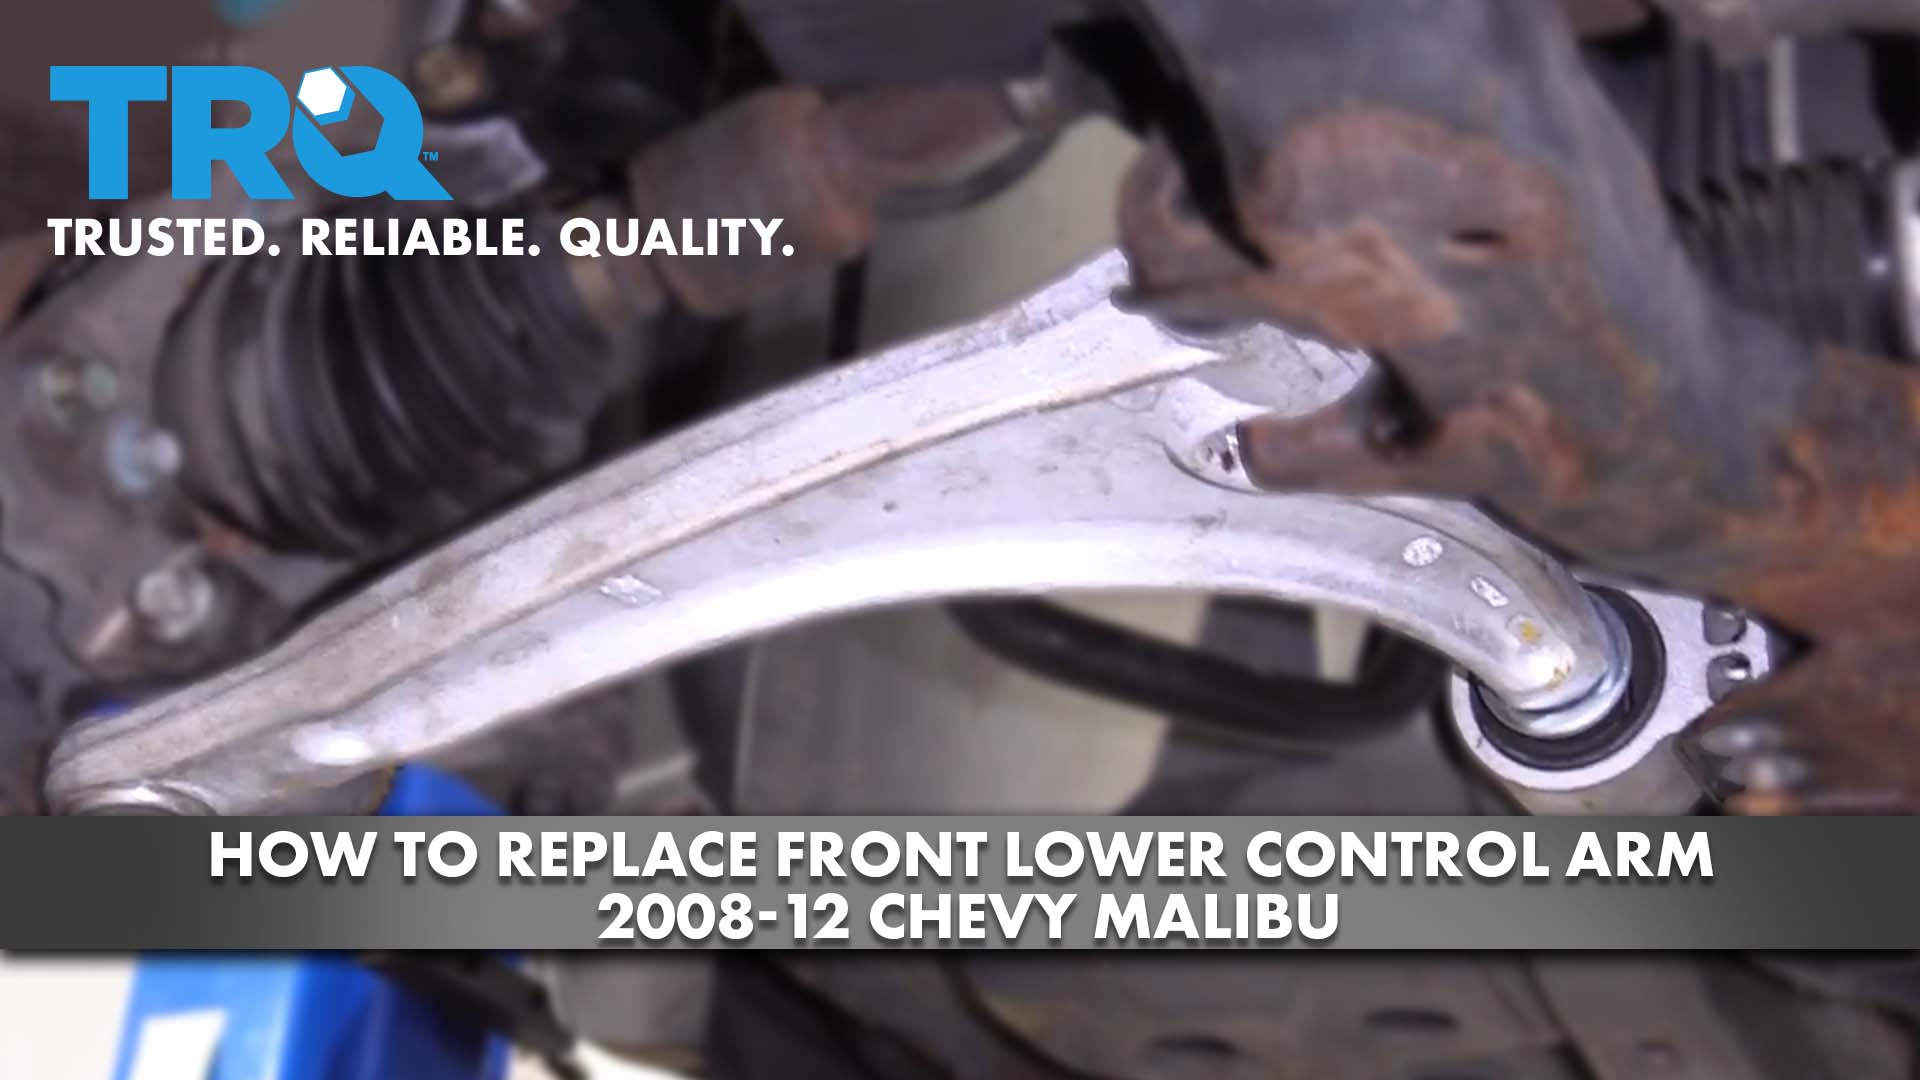 How to Replace Front Lower Control Arm 2008-12 Chevy Malibu